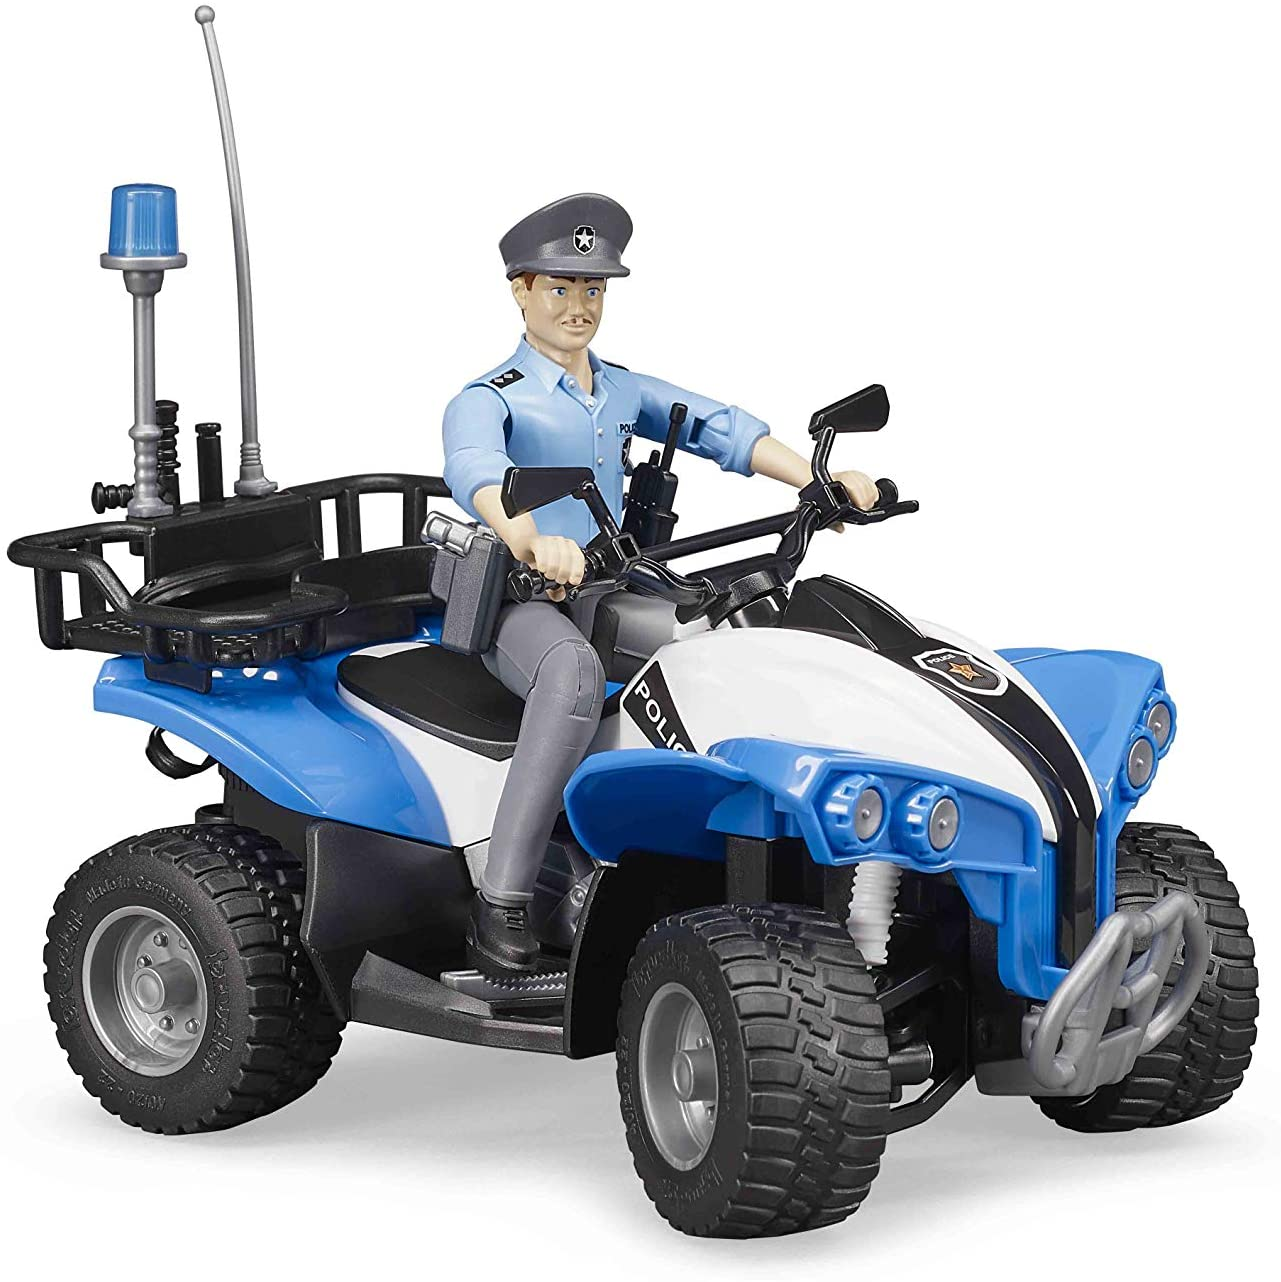 Bruder Quad with Light Skin Police & Accessories (Gender may vary)